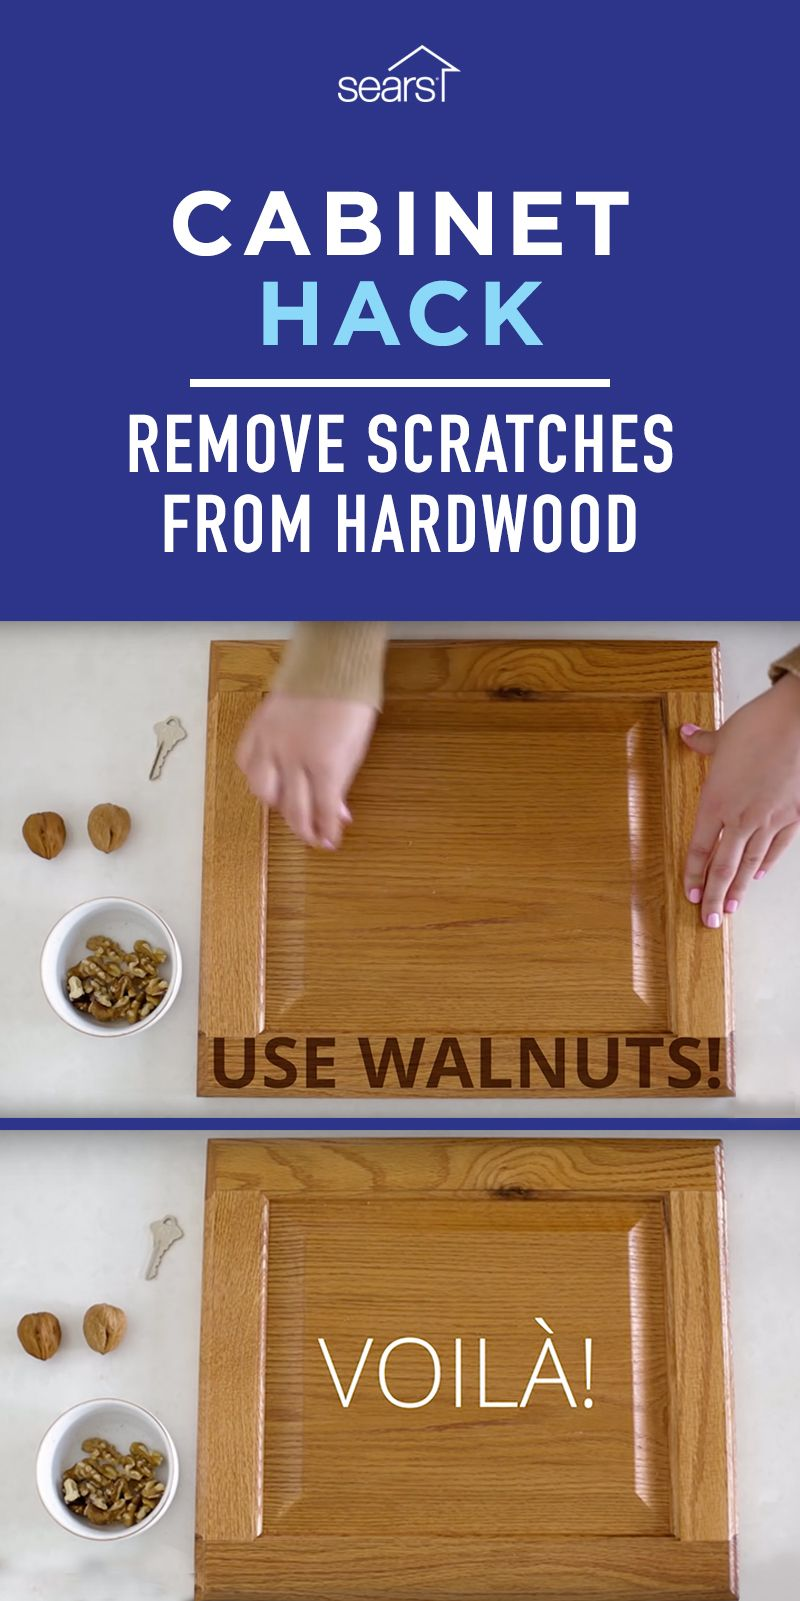 Can You Really Remove Scratches From Hardwood With Walnuts We Tested This Kitchen Hack To Find Out If Your Clean Kitchen Cabinets Clean House Cleaning Hacks